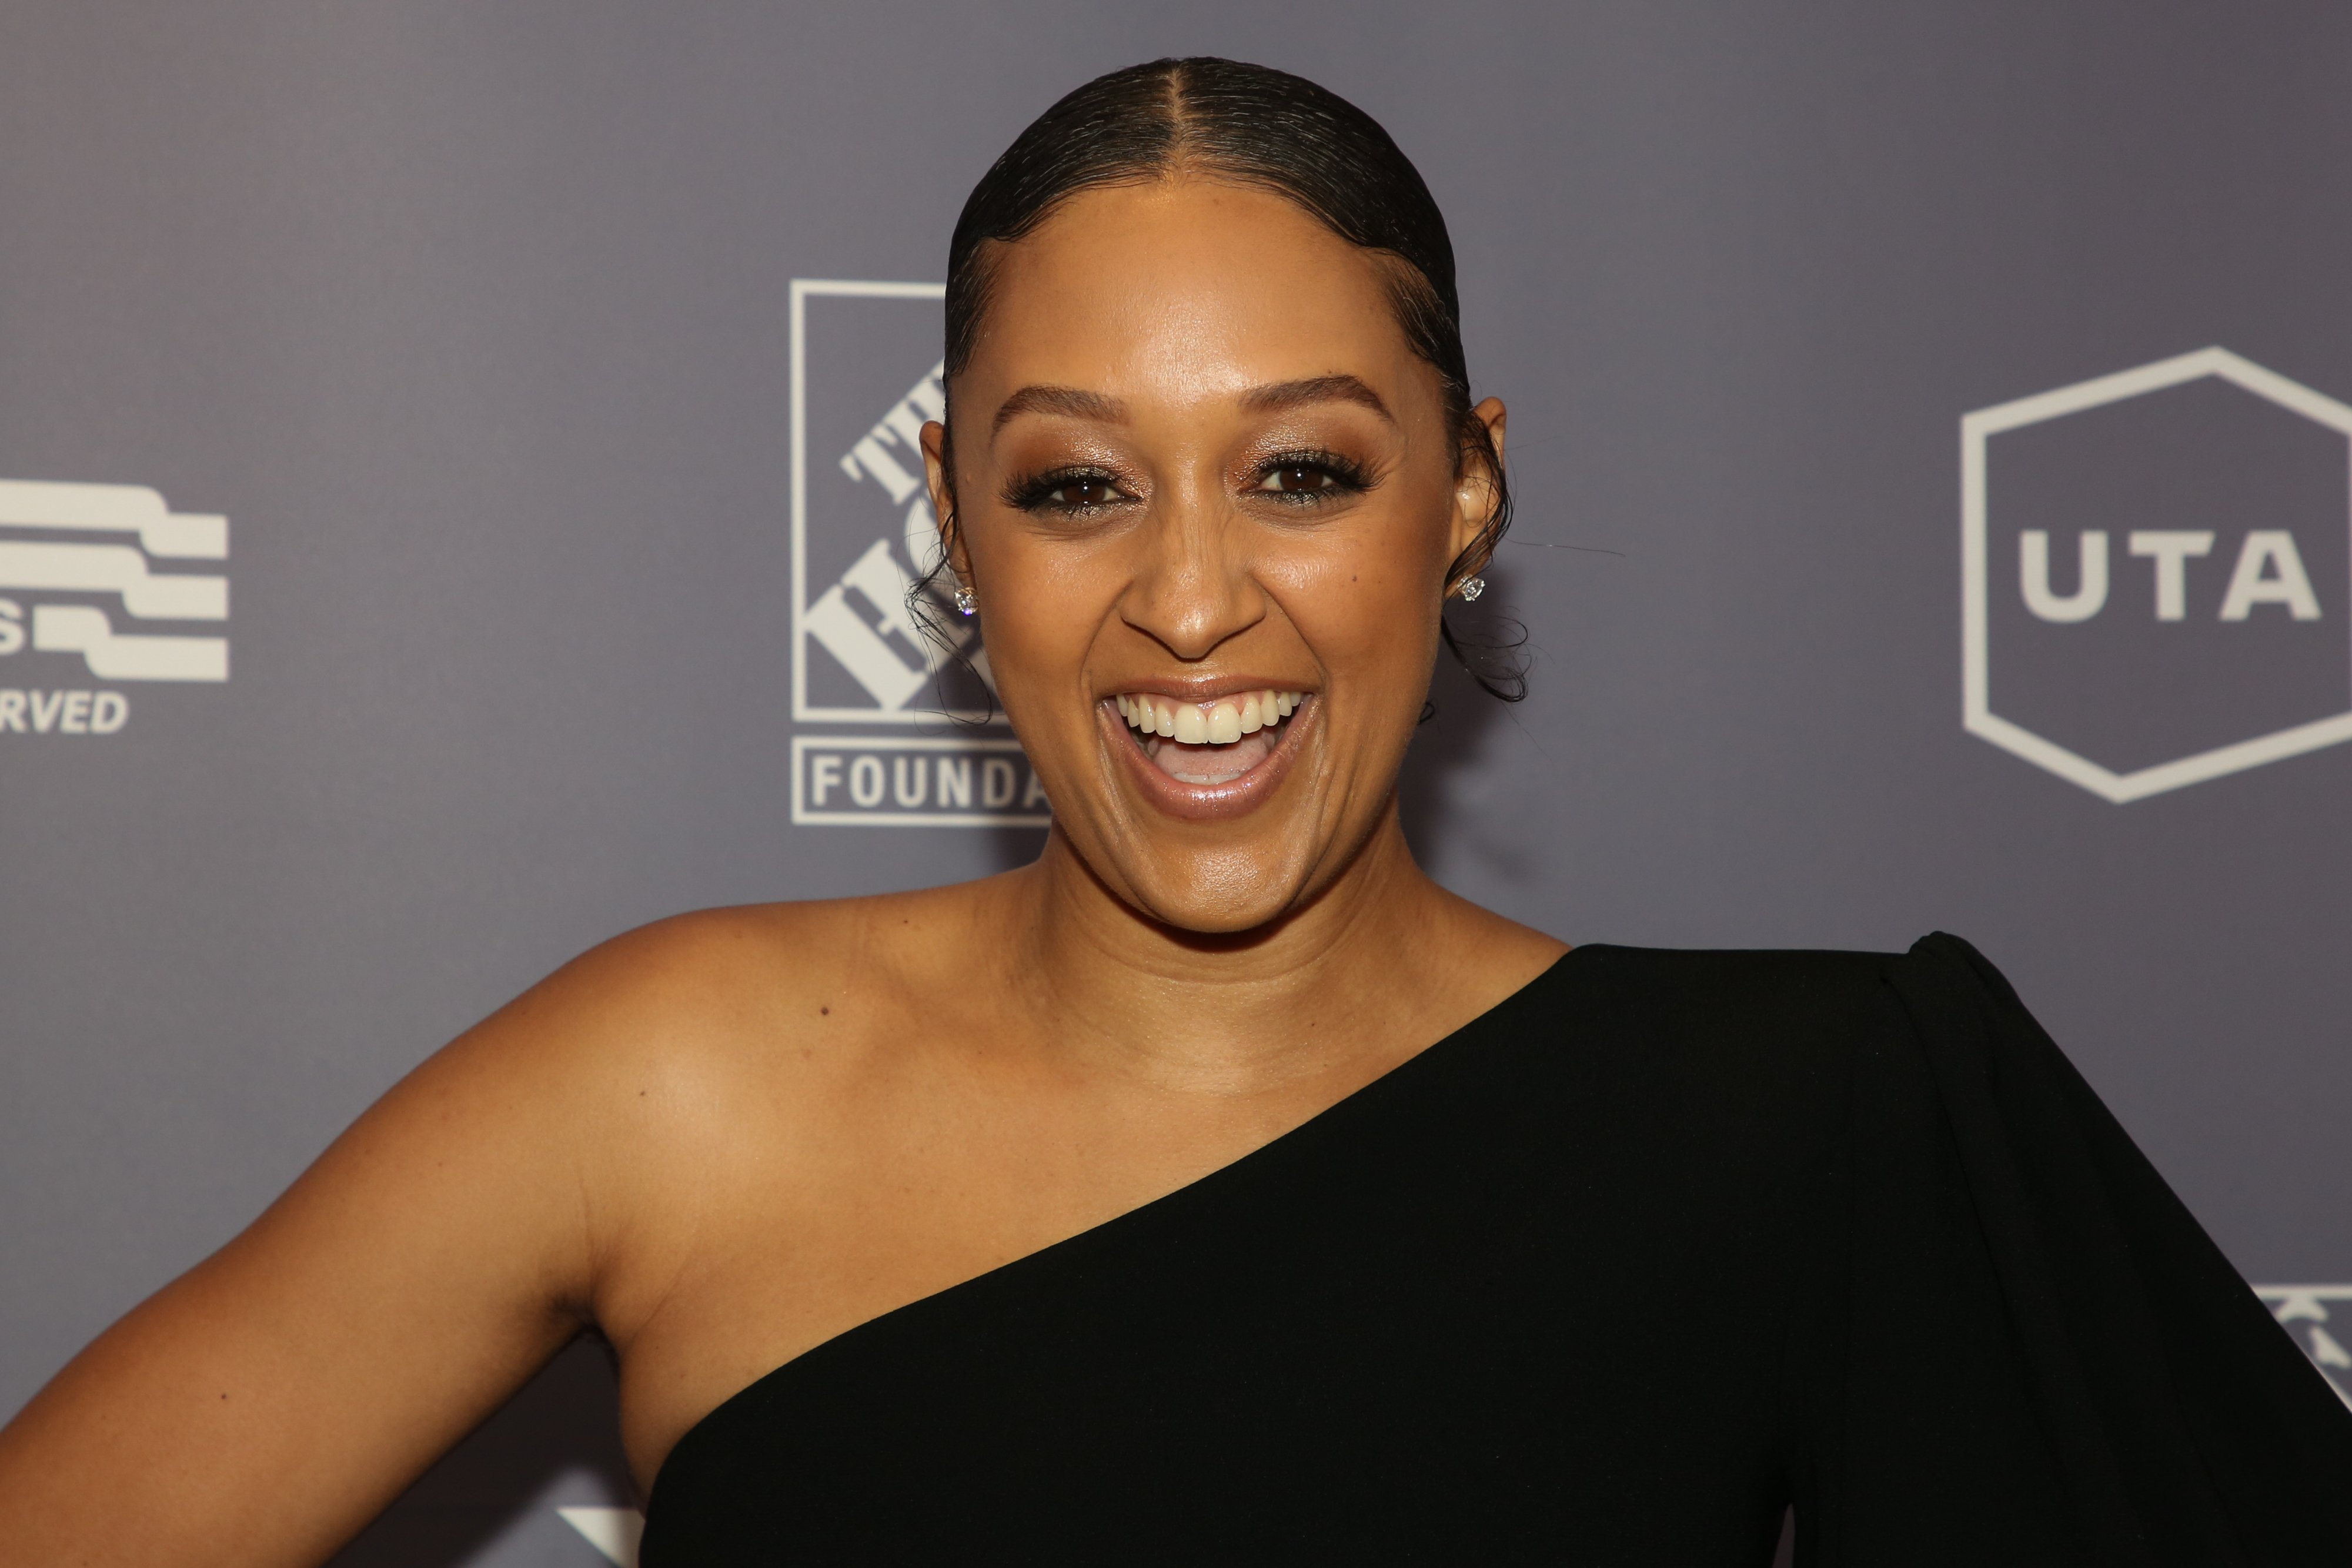 Tia Mowry pictured at the 2019 US Vets Salute Gala at The Beverly Hilton Hotel on November 05, 2019. | Photo: Getty Images